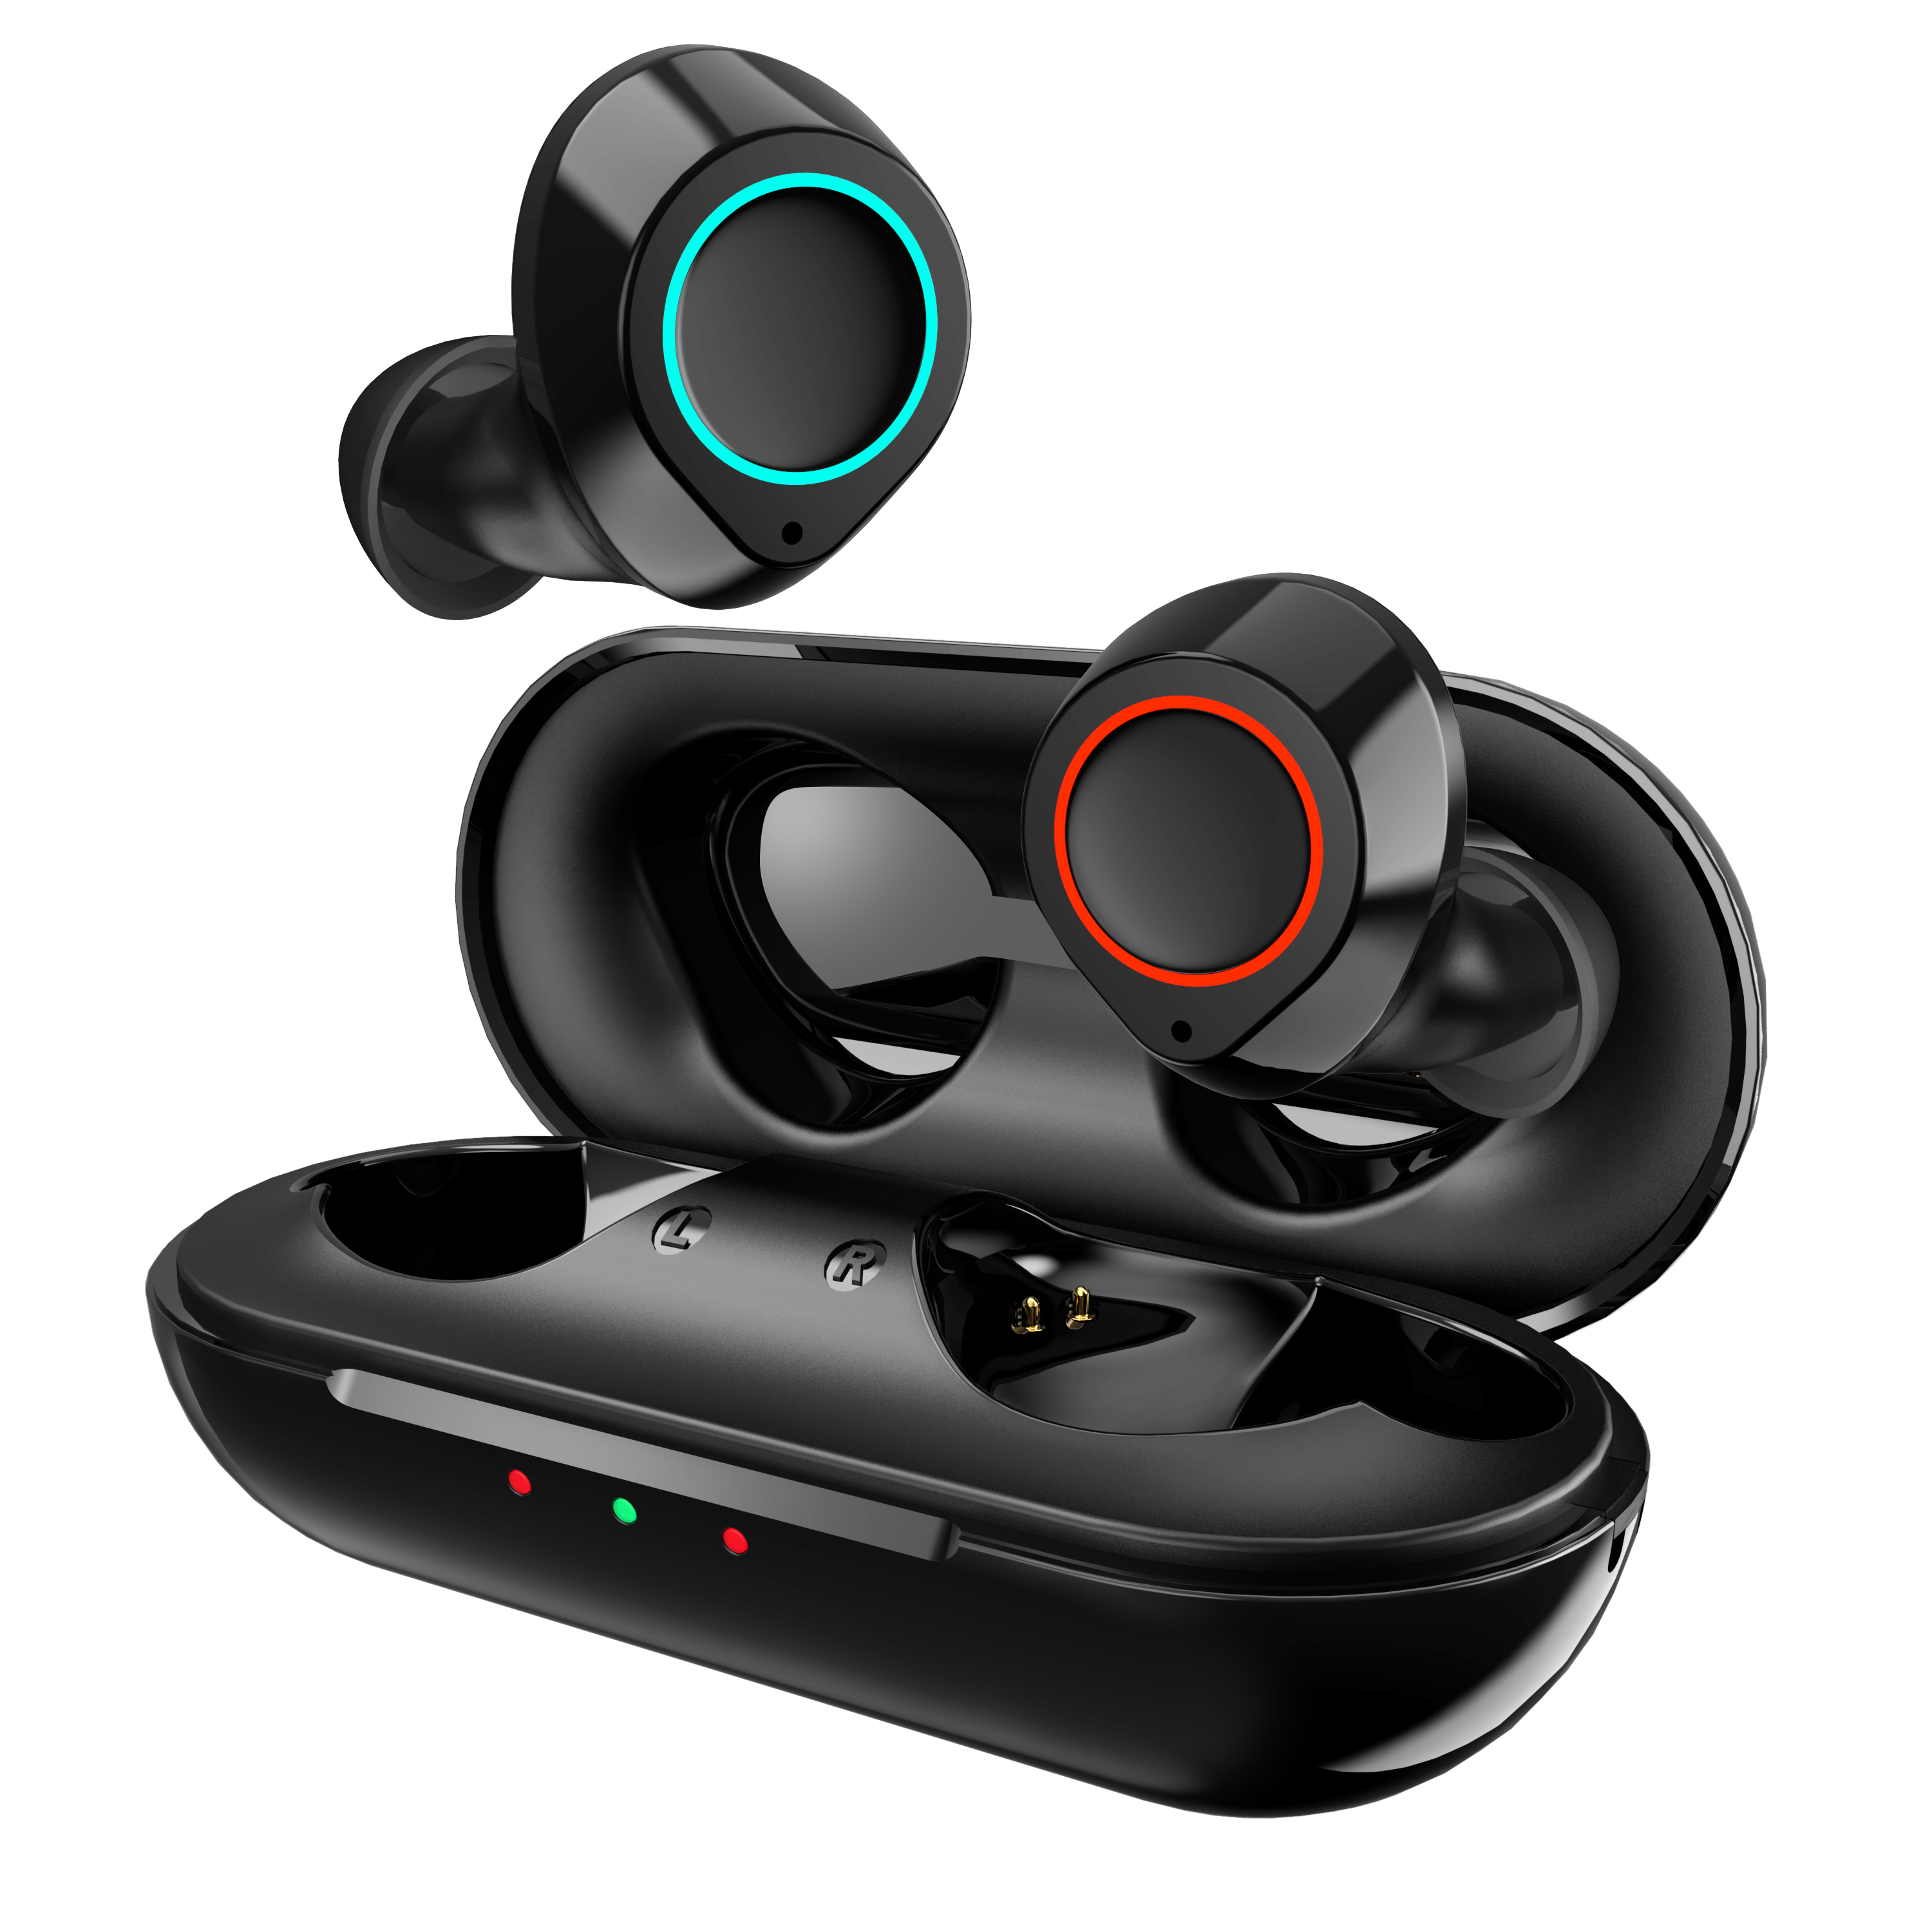 Jecoo Bluetooth 5.0 Stereo Sound Auto-Pairing Sweatproof Wireless Earbuds